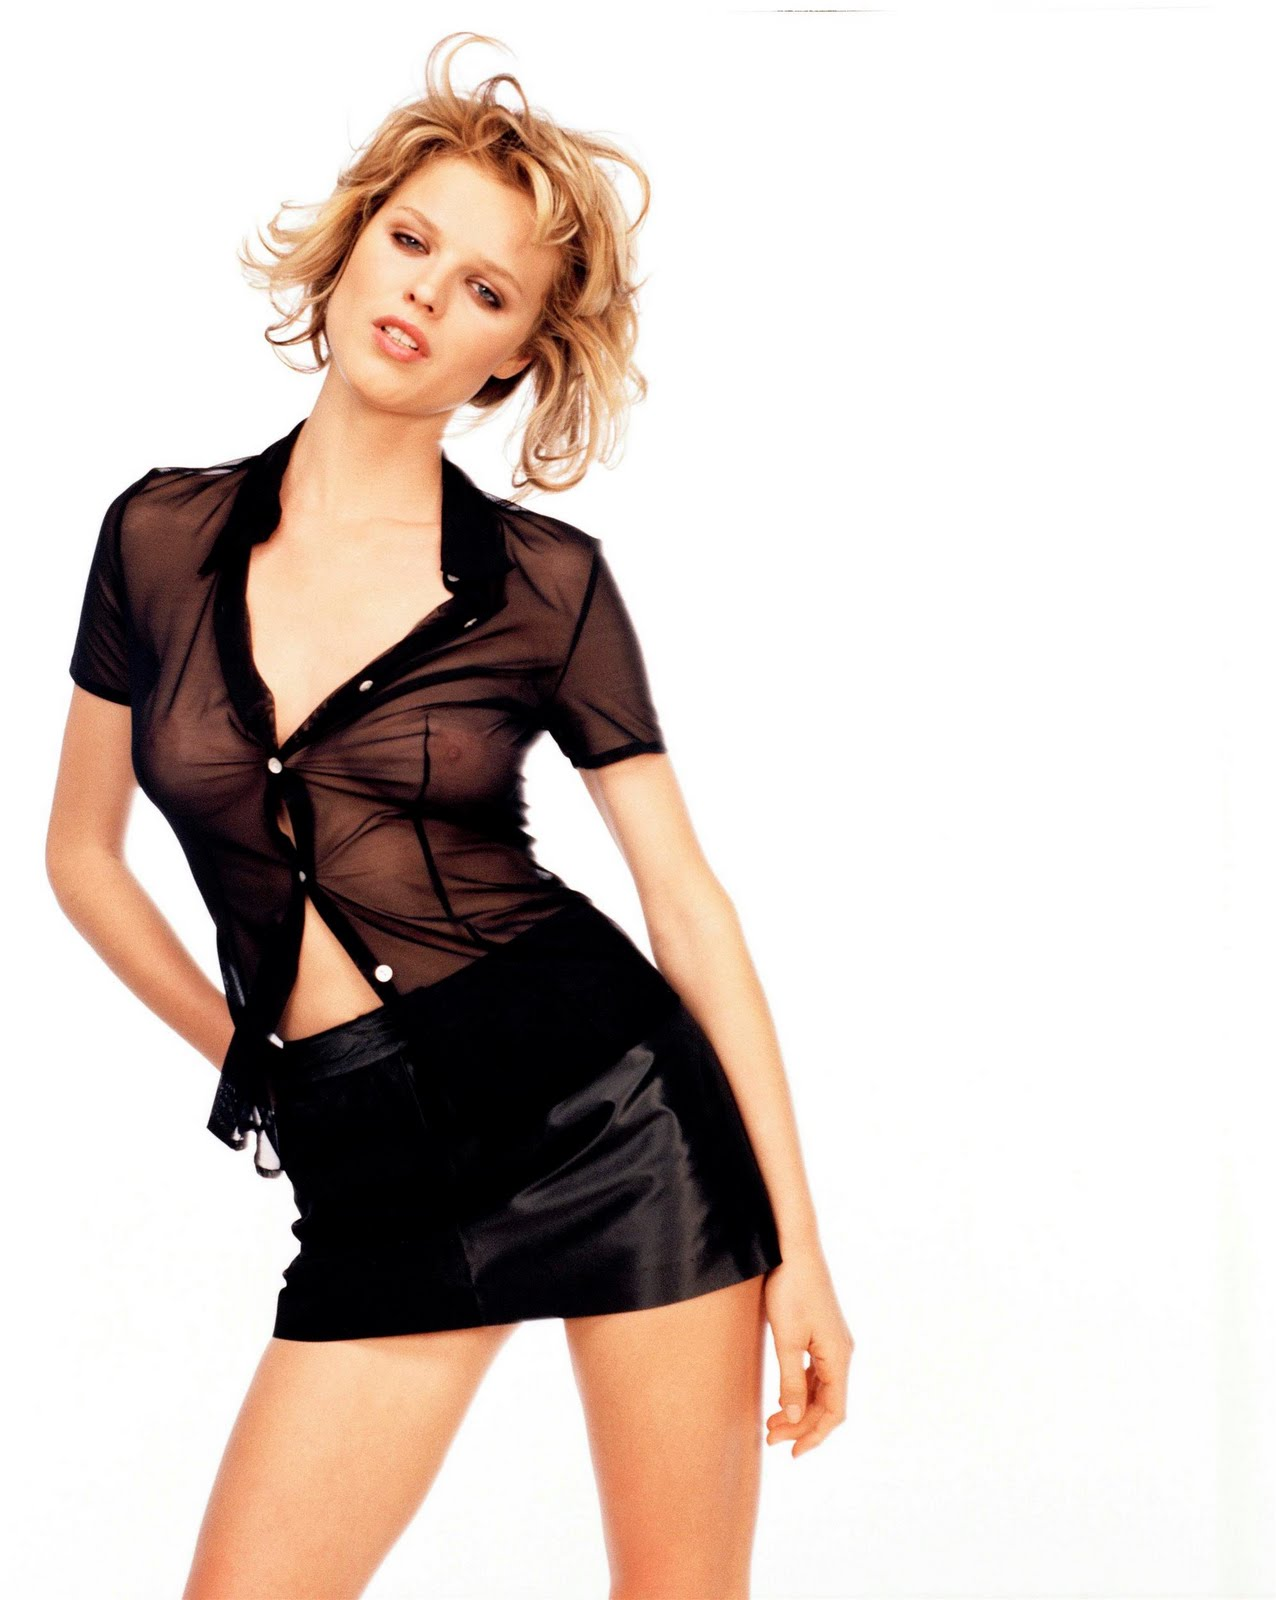 May 02, · These 20 style tips on how to wear sheer shirts will ensure you do more with your see-through tops than just pair them with a tank. Check out these outfit ideas for some style inspiration: Wear a black tank under a white lace shirt for a cool contrast.